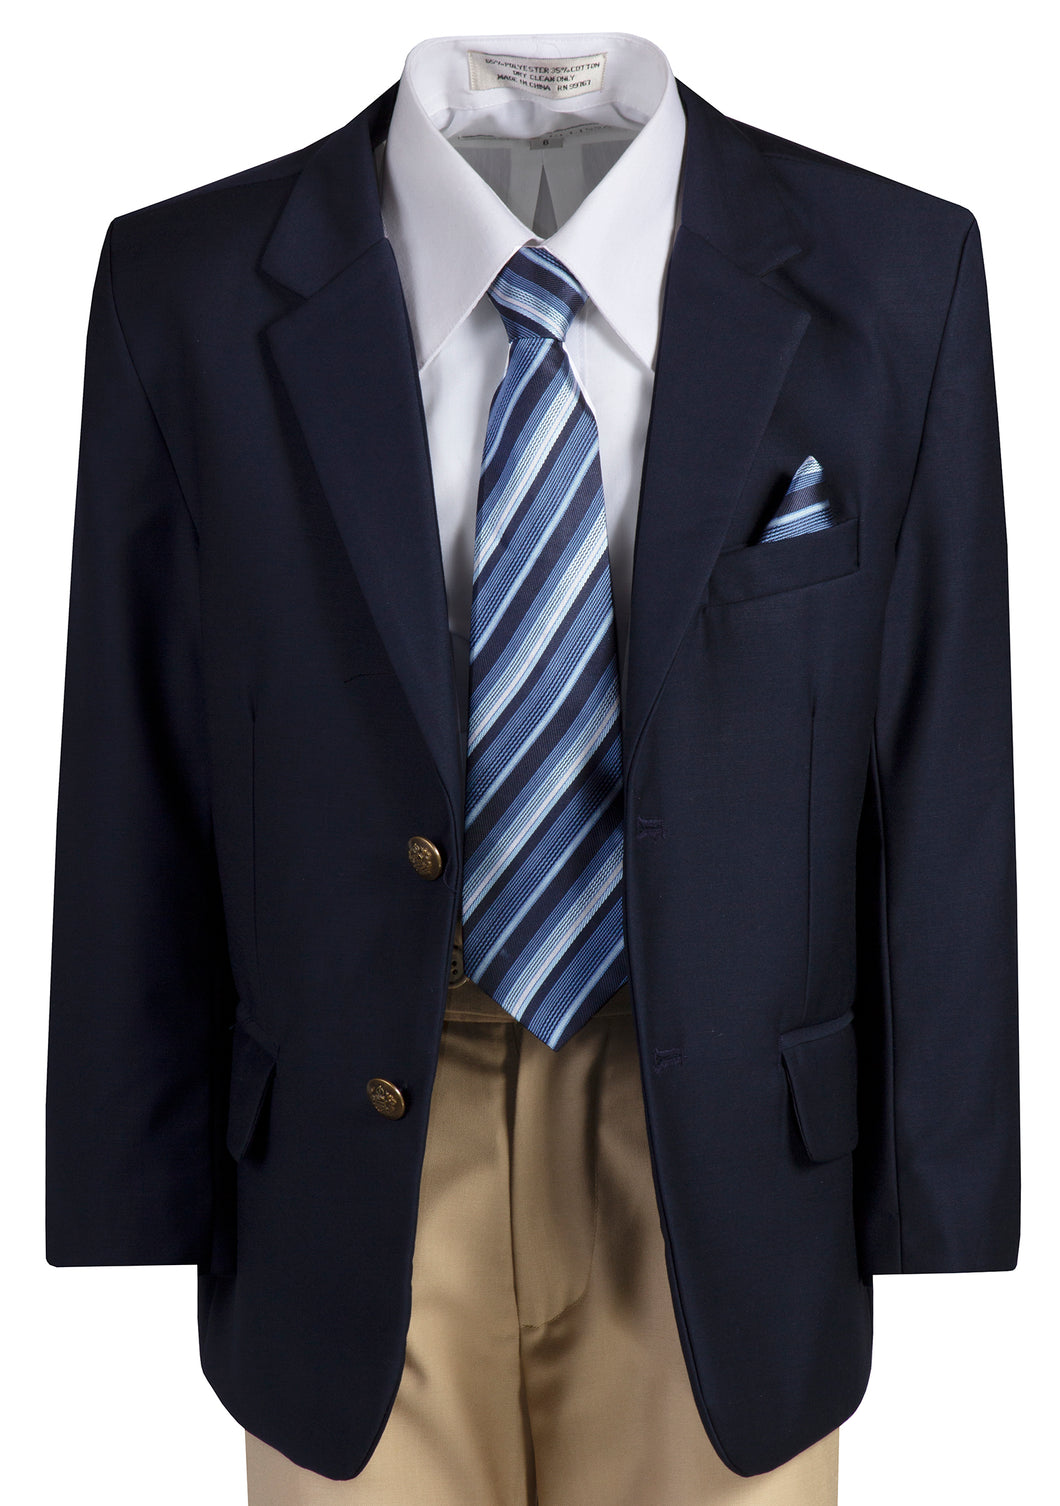 2 Button Standard Fit Navy Blazer Suit with Colored Pants (Rowan)